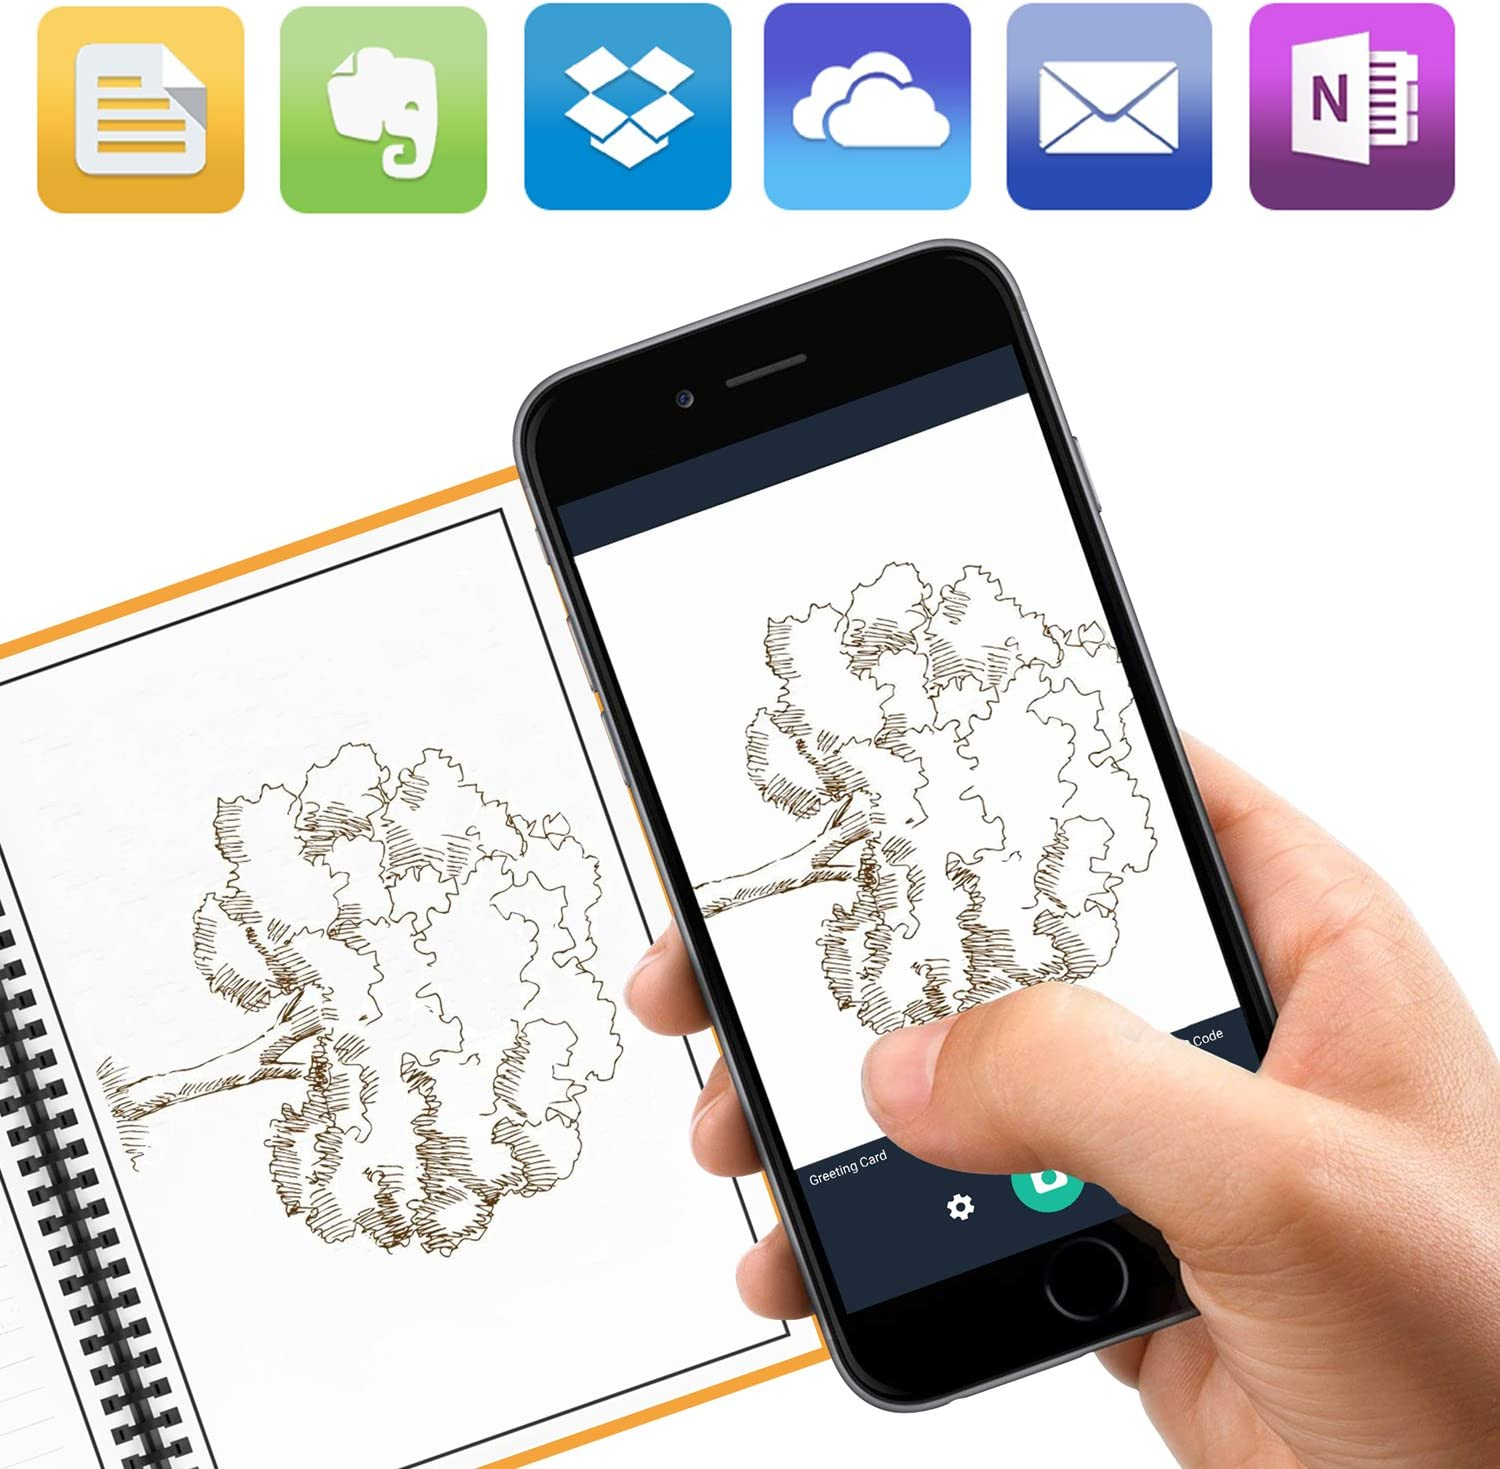 KYSTORE B5 Reusable Smart Erasable Notebook Wirebound Spiral Notebooks and Journals Hardcover Writing Note Book Executive Heat Erase Dot Grid Paper Wide Ruled Blank 60 Pages with Erasable Pen Orange